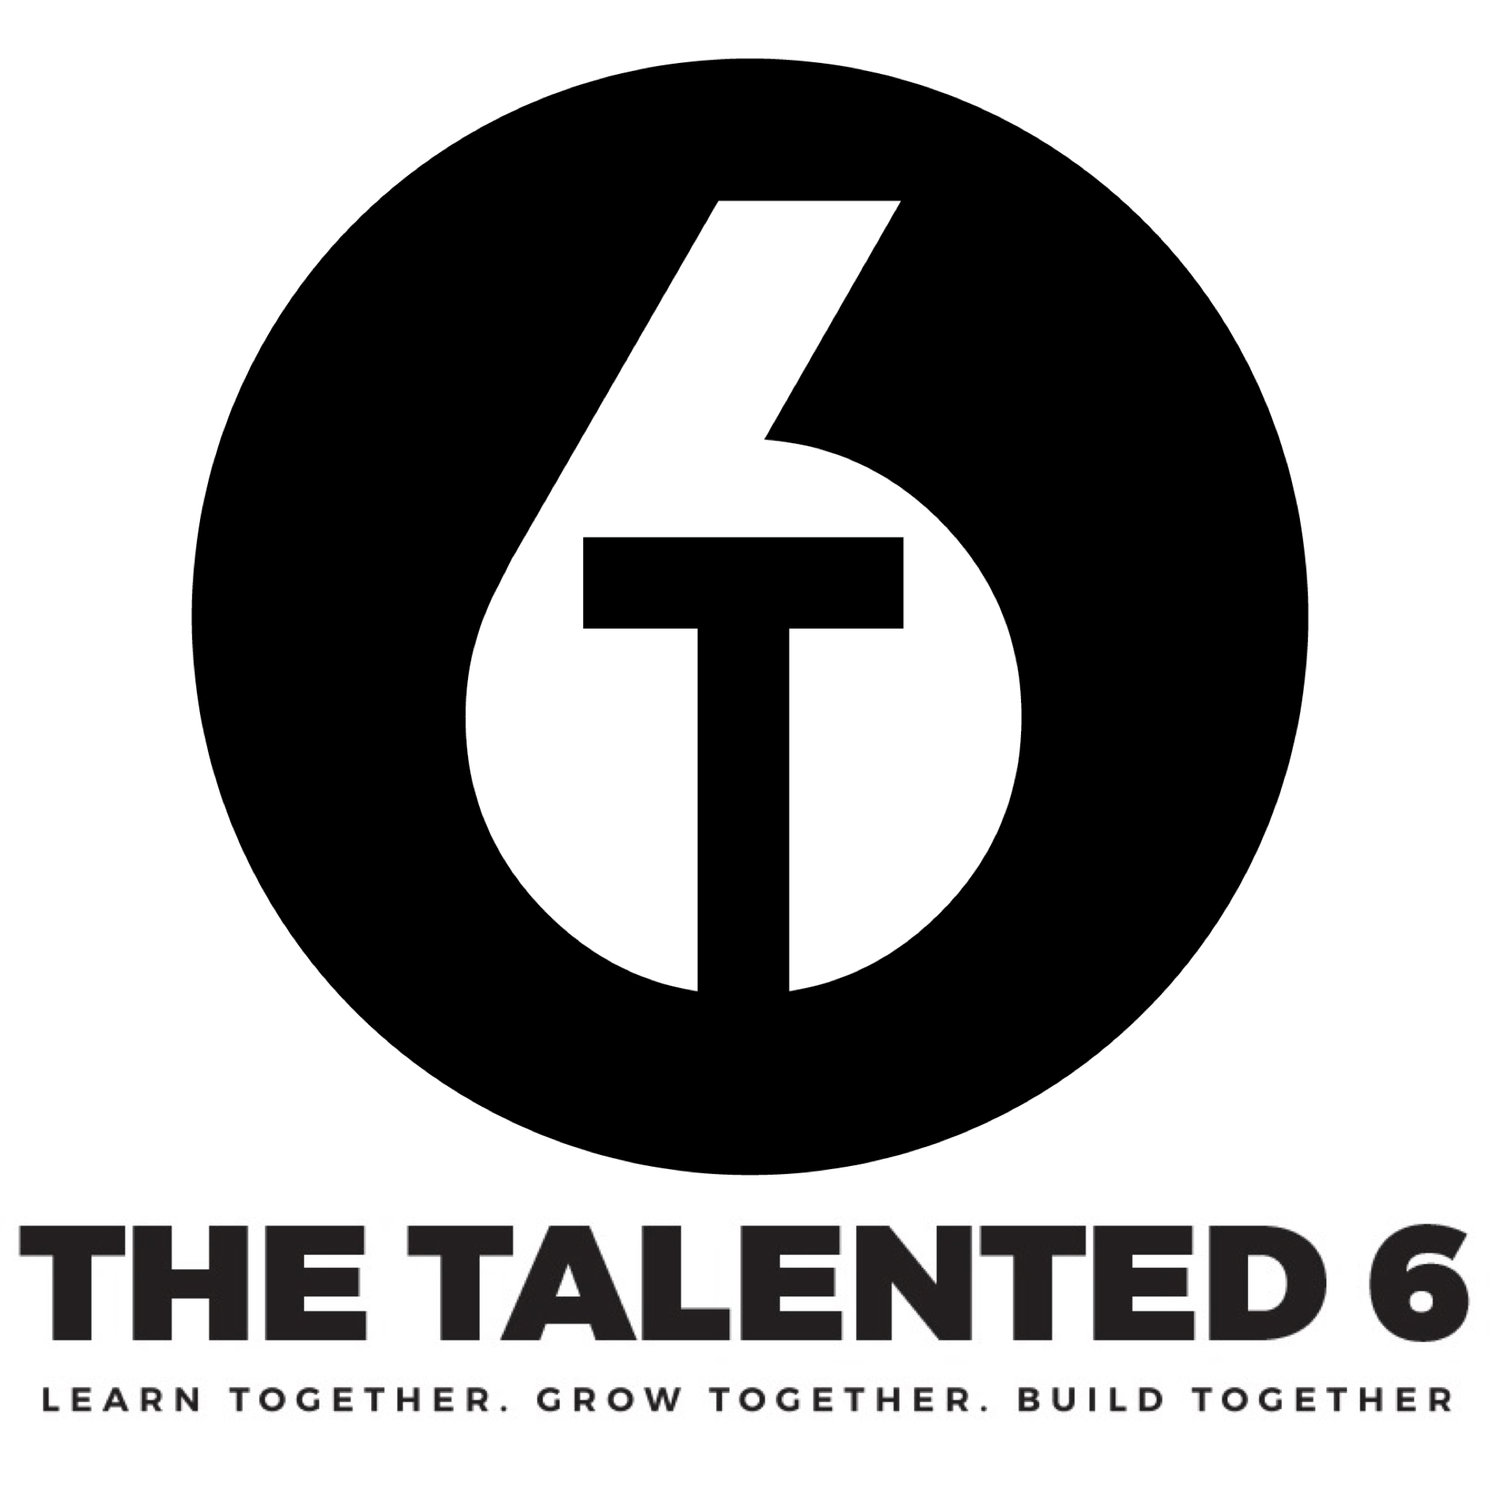 The Talented 6